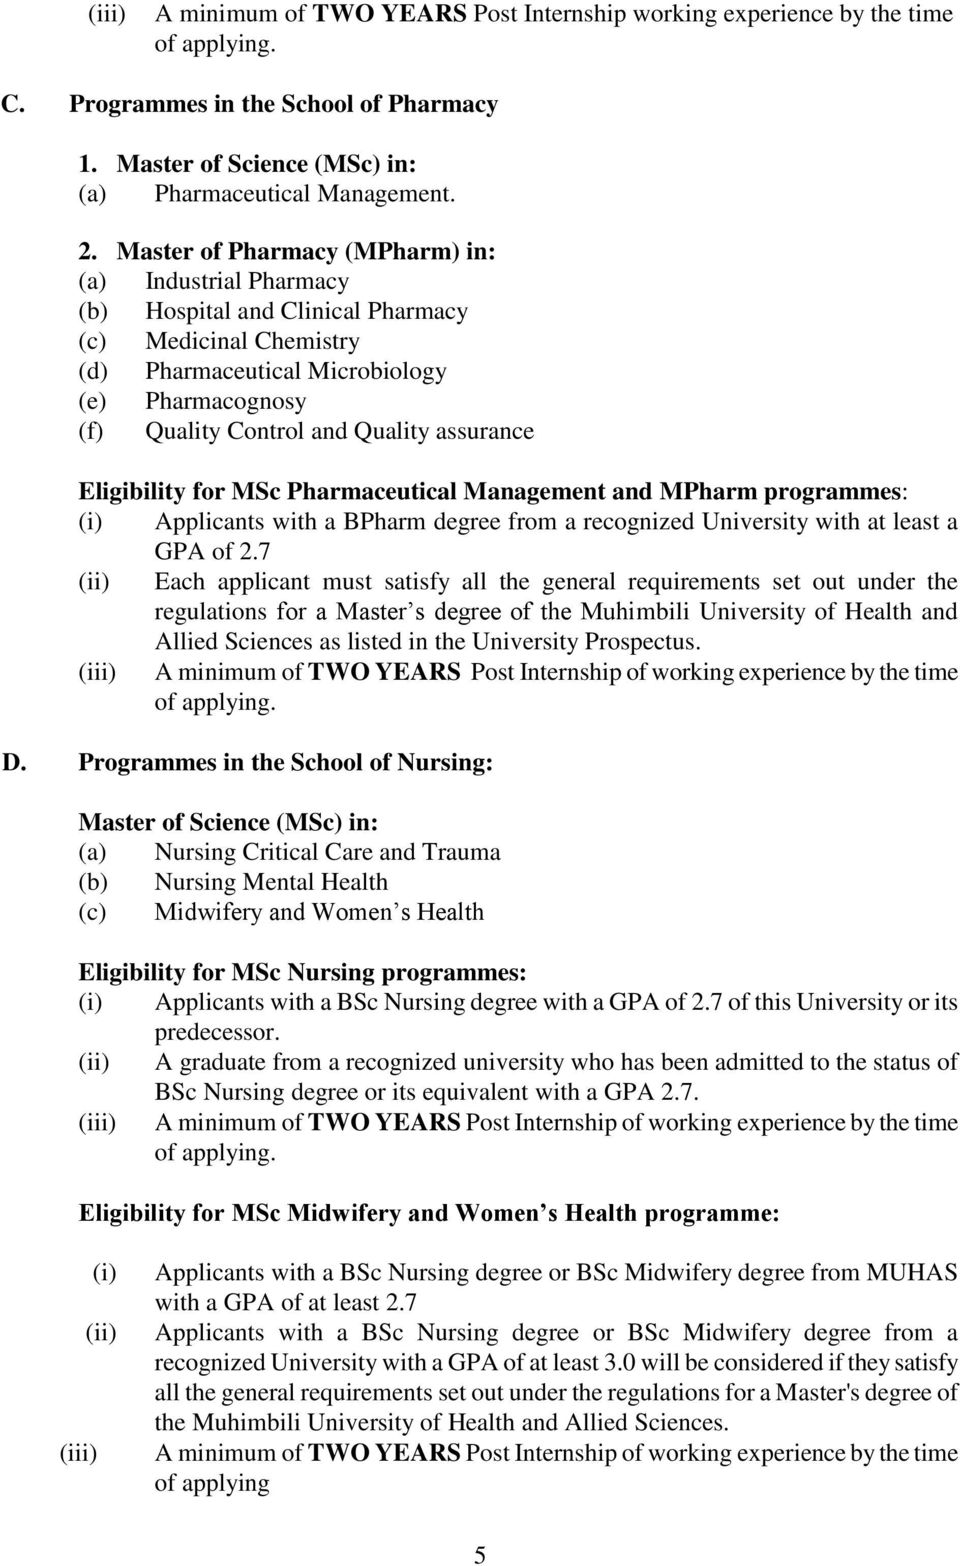 assurance Eligibility for MSc Pharmaceutical Management and MPharm programmes: (i) Applicants with a BPharm degree from a recognized University with at least a GPA of 2.